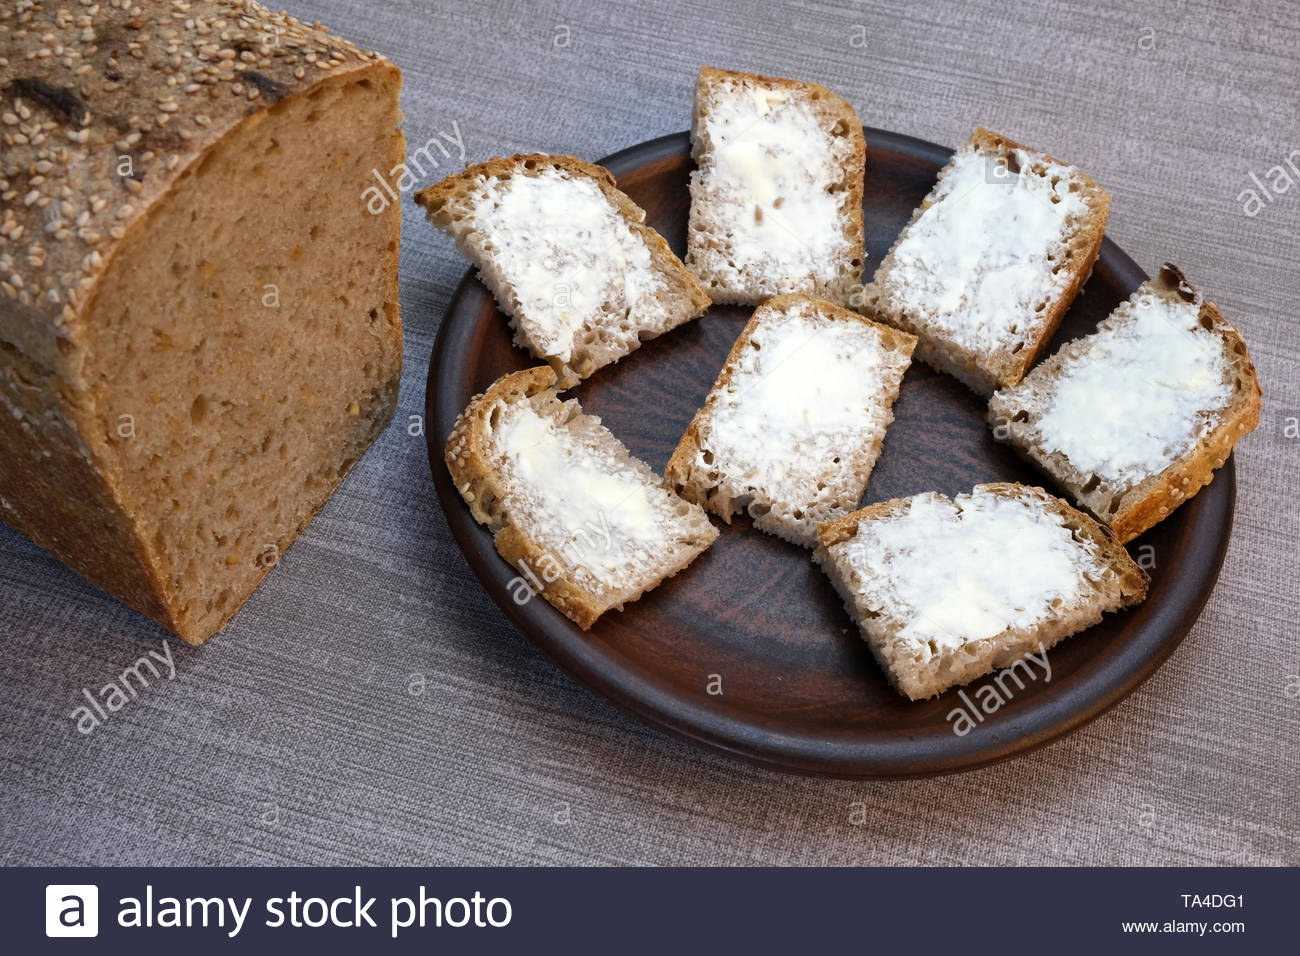 Small sandwiches on homemade bread with butter on a brown clay plate on a table with a gray tablecloth - Stock Image